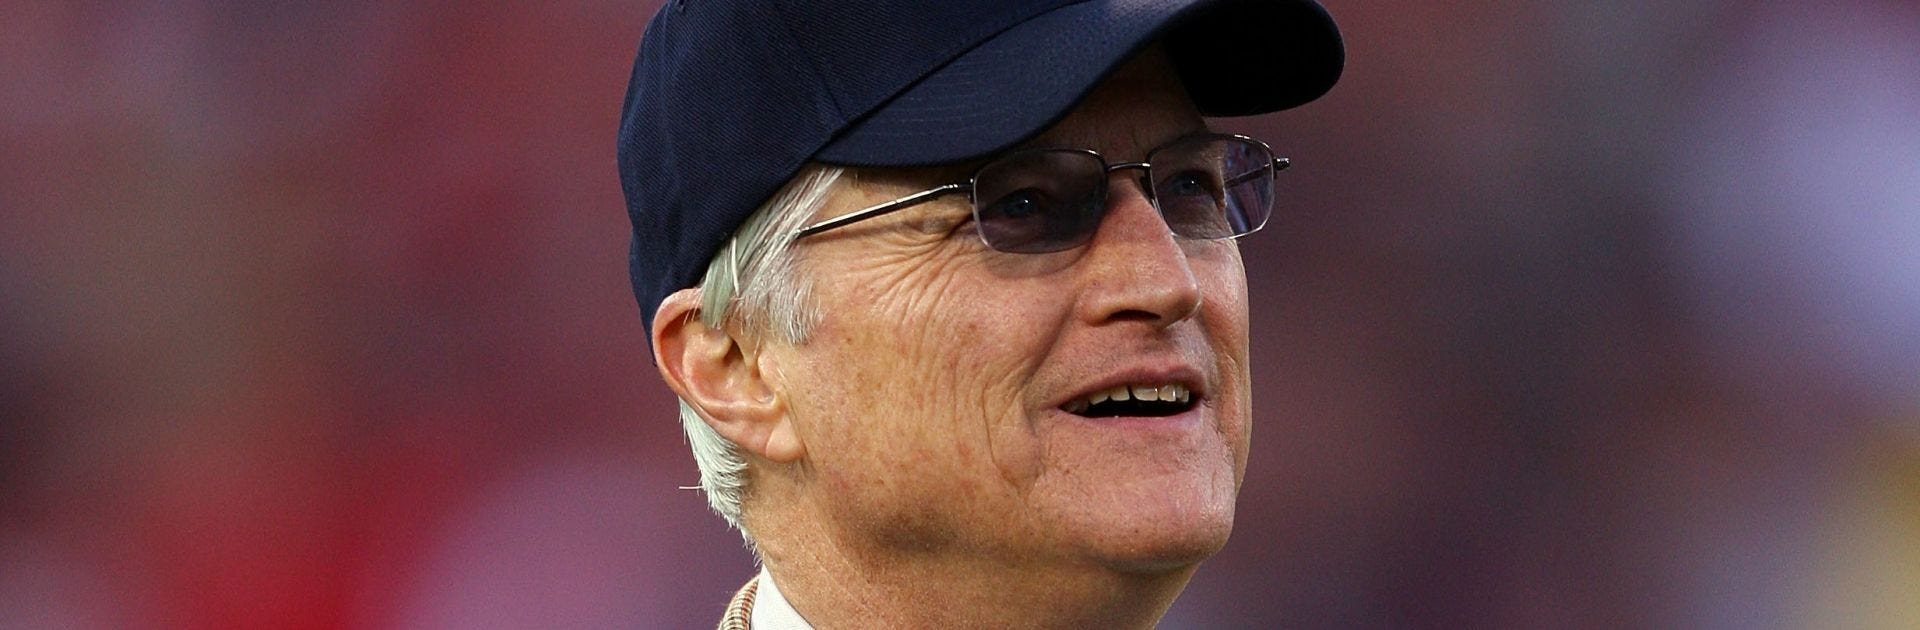 Mike McCaskey, courtesy of the Associated Press